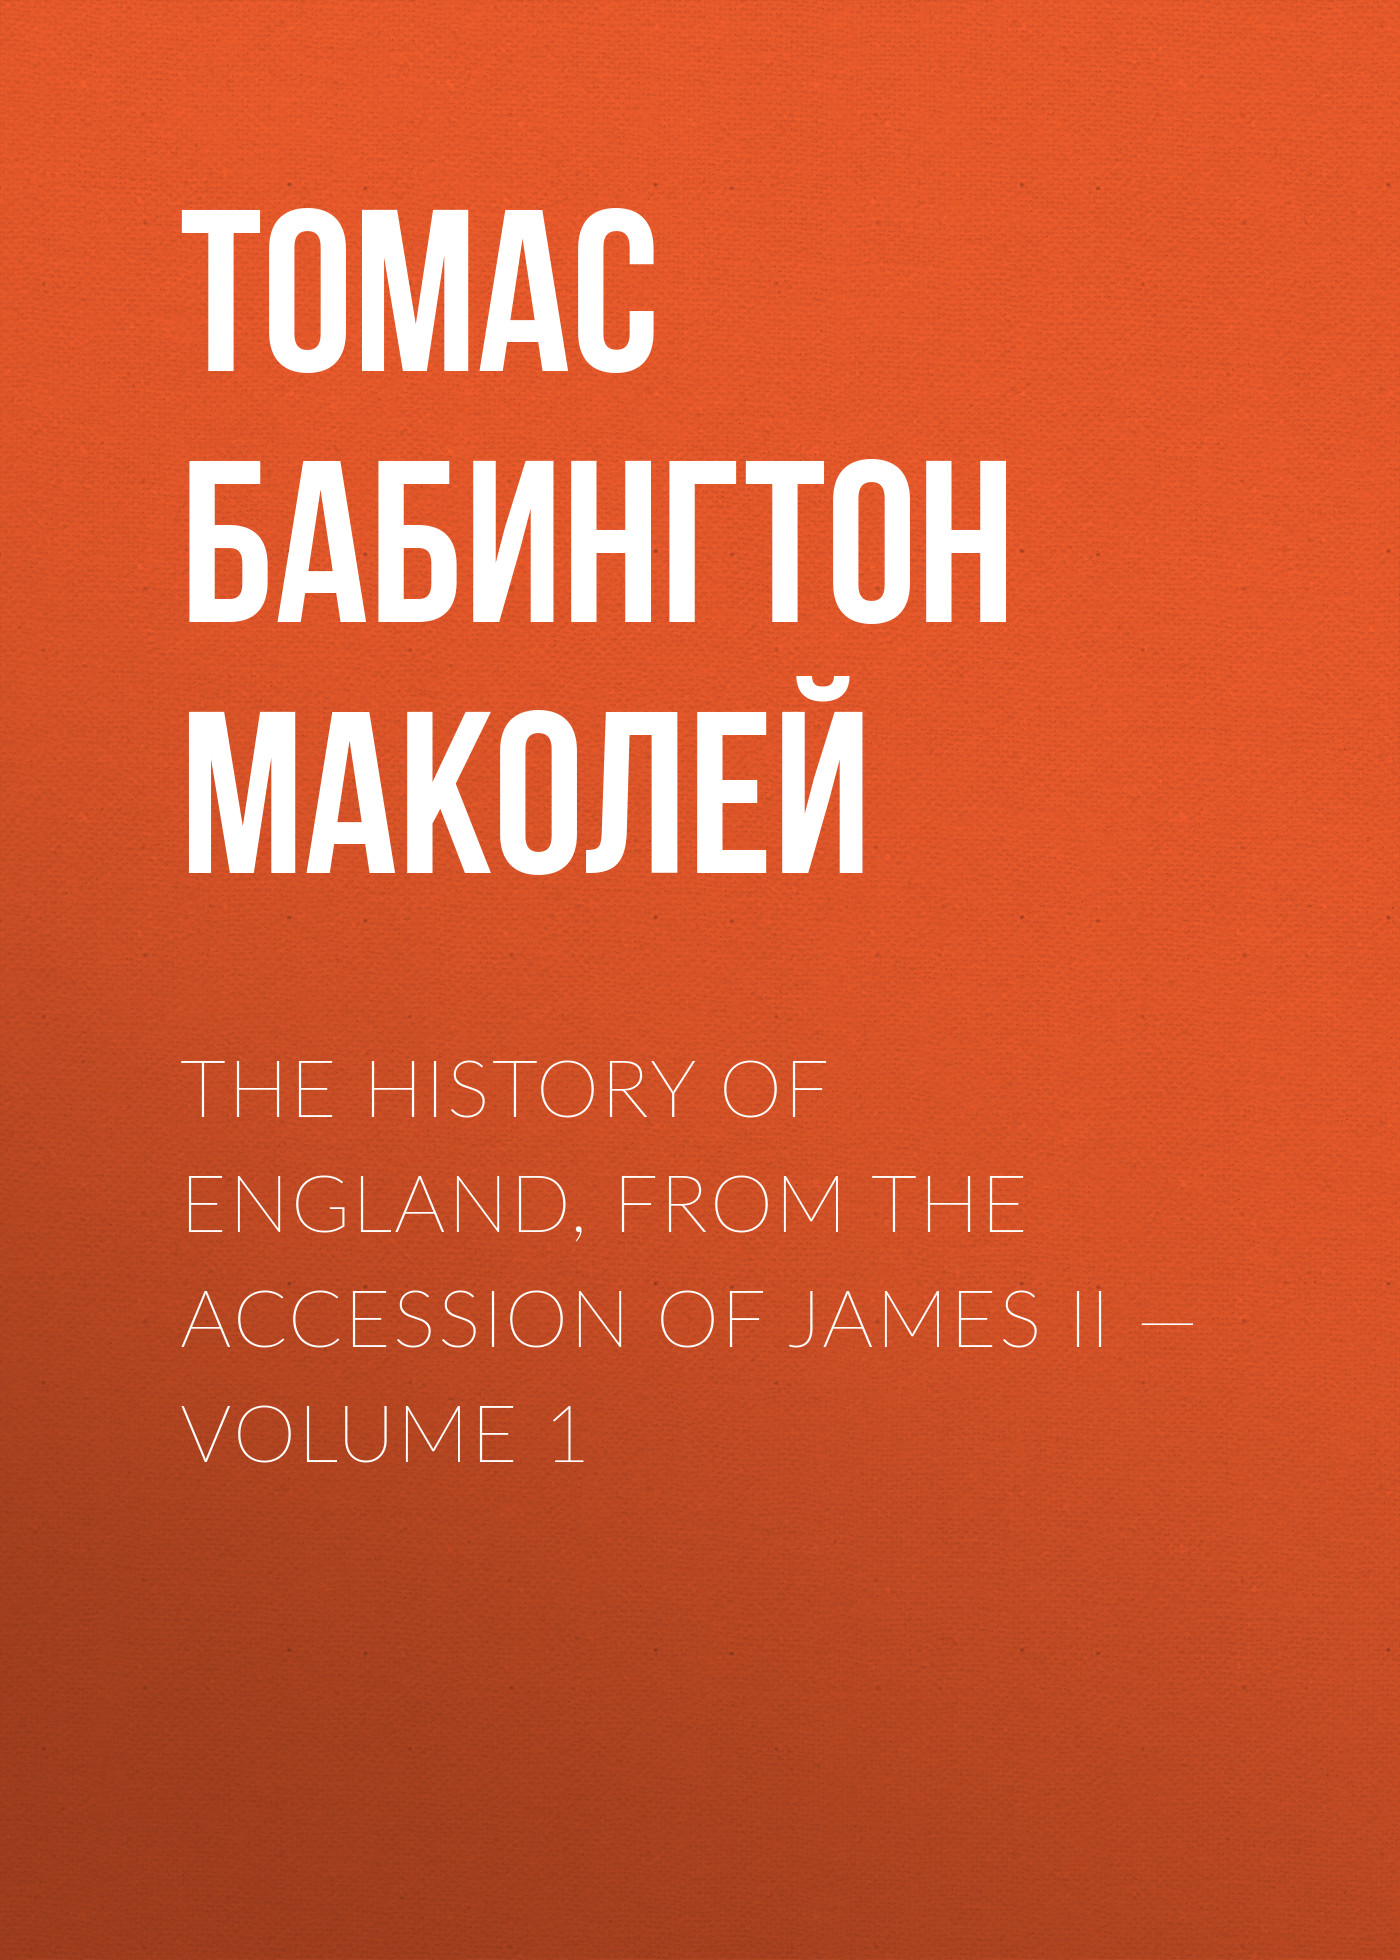 Фото - Томас Бабингтон Маколей The History of England, from the Accession of James II — Volume 1 m guizot history of richard cromwell and the restoration of charles ii volume 2